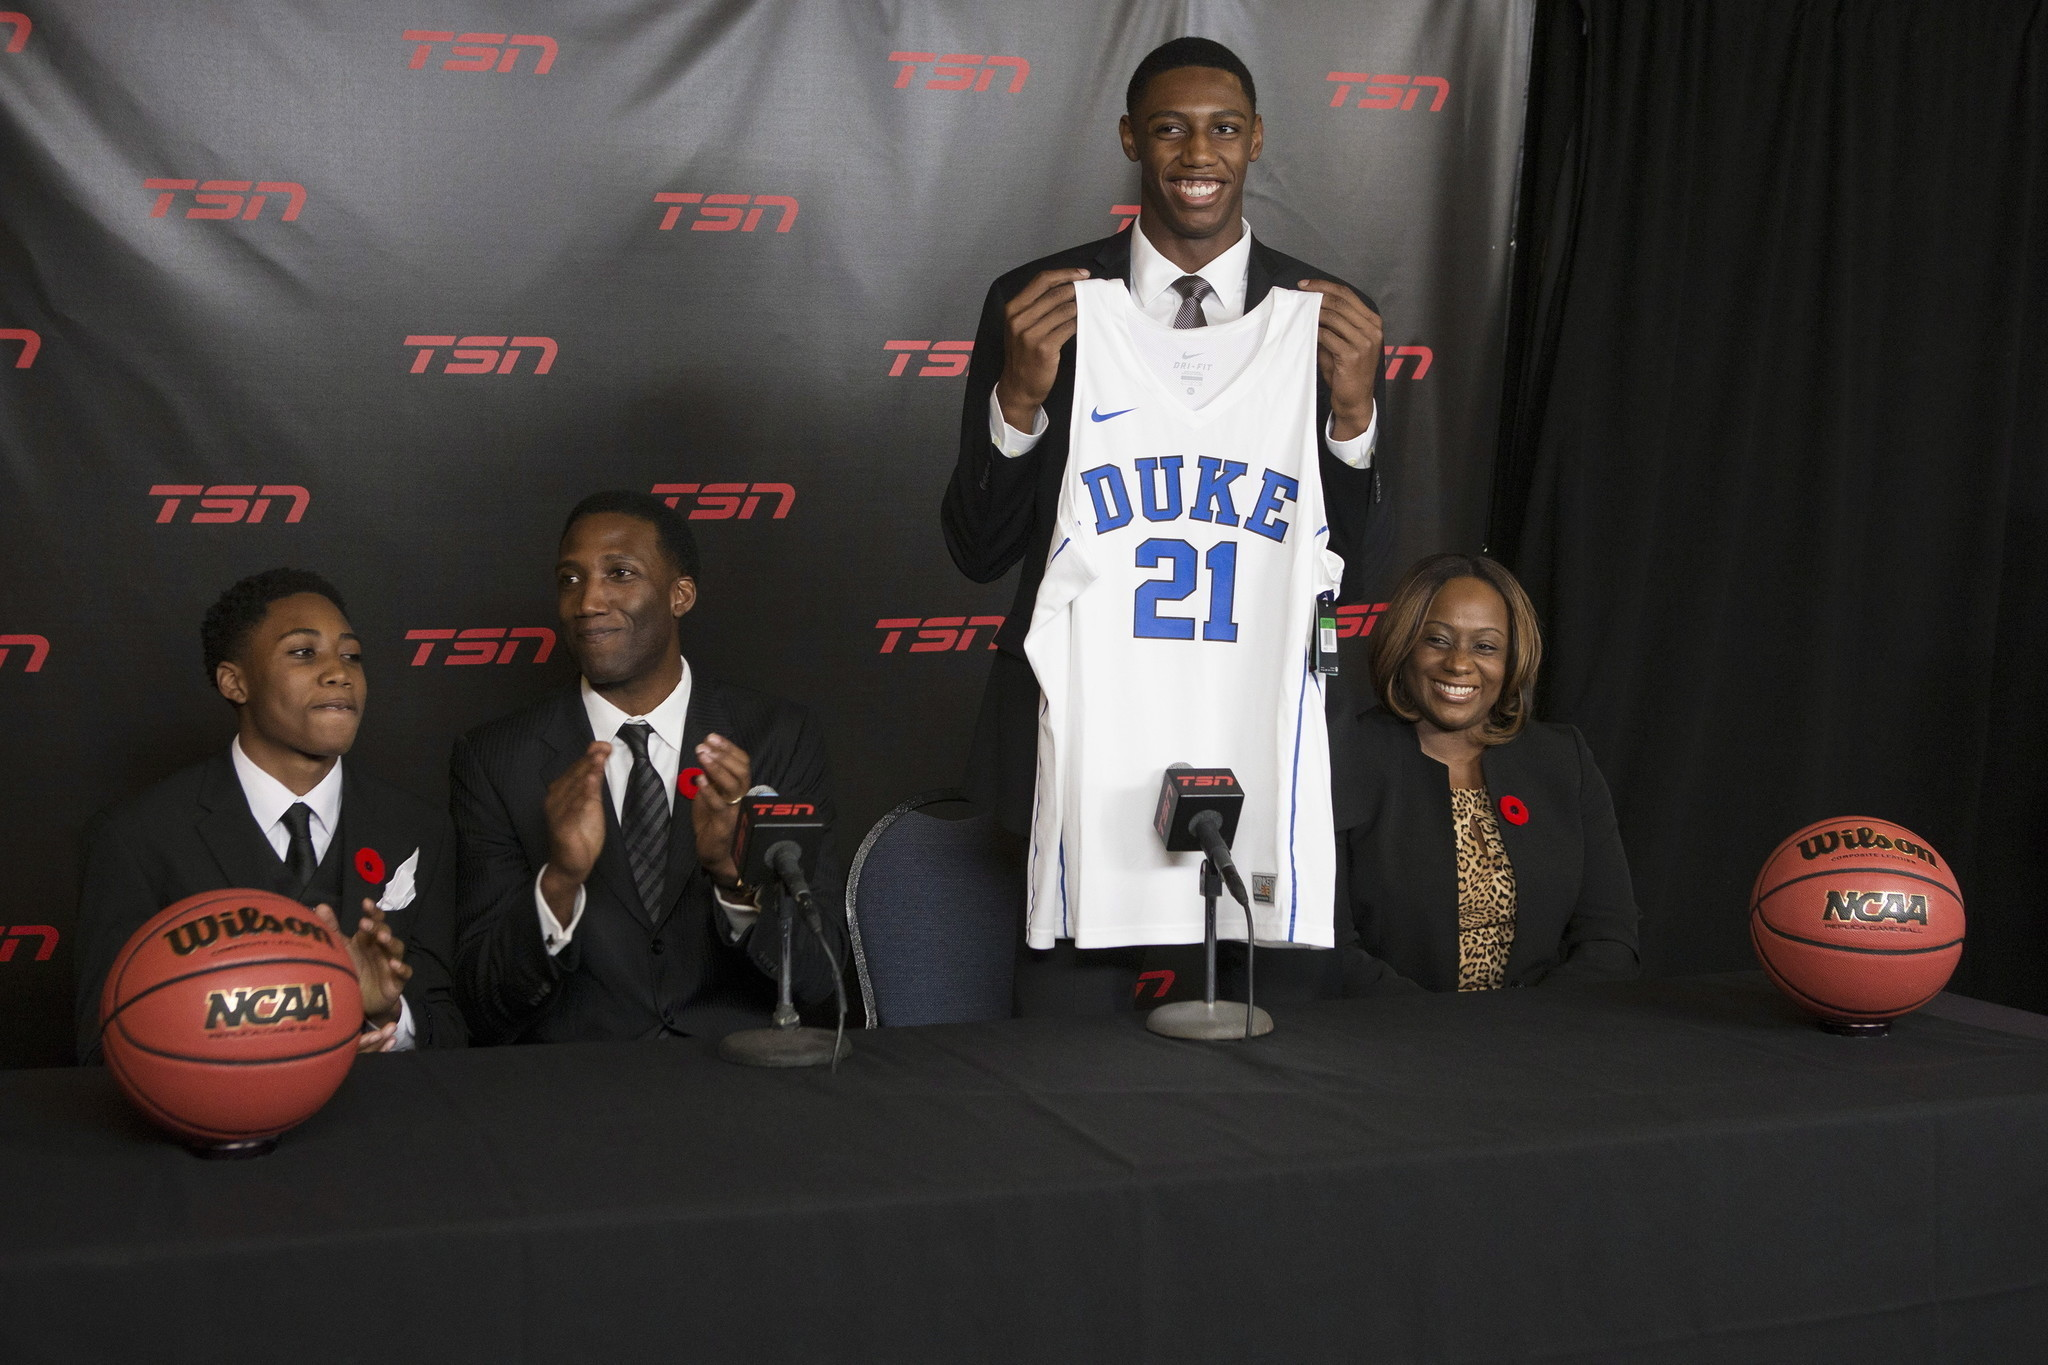 Montverde's R.J. Barrett picks Duke over Kentucky, Oregon - Orlando Sentinel